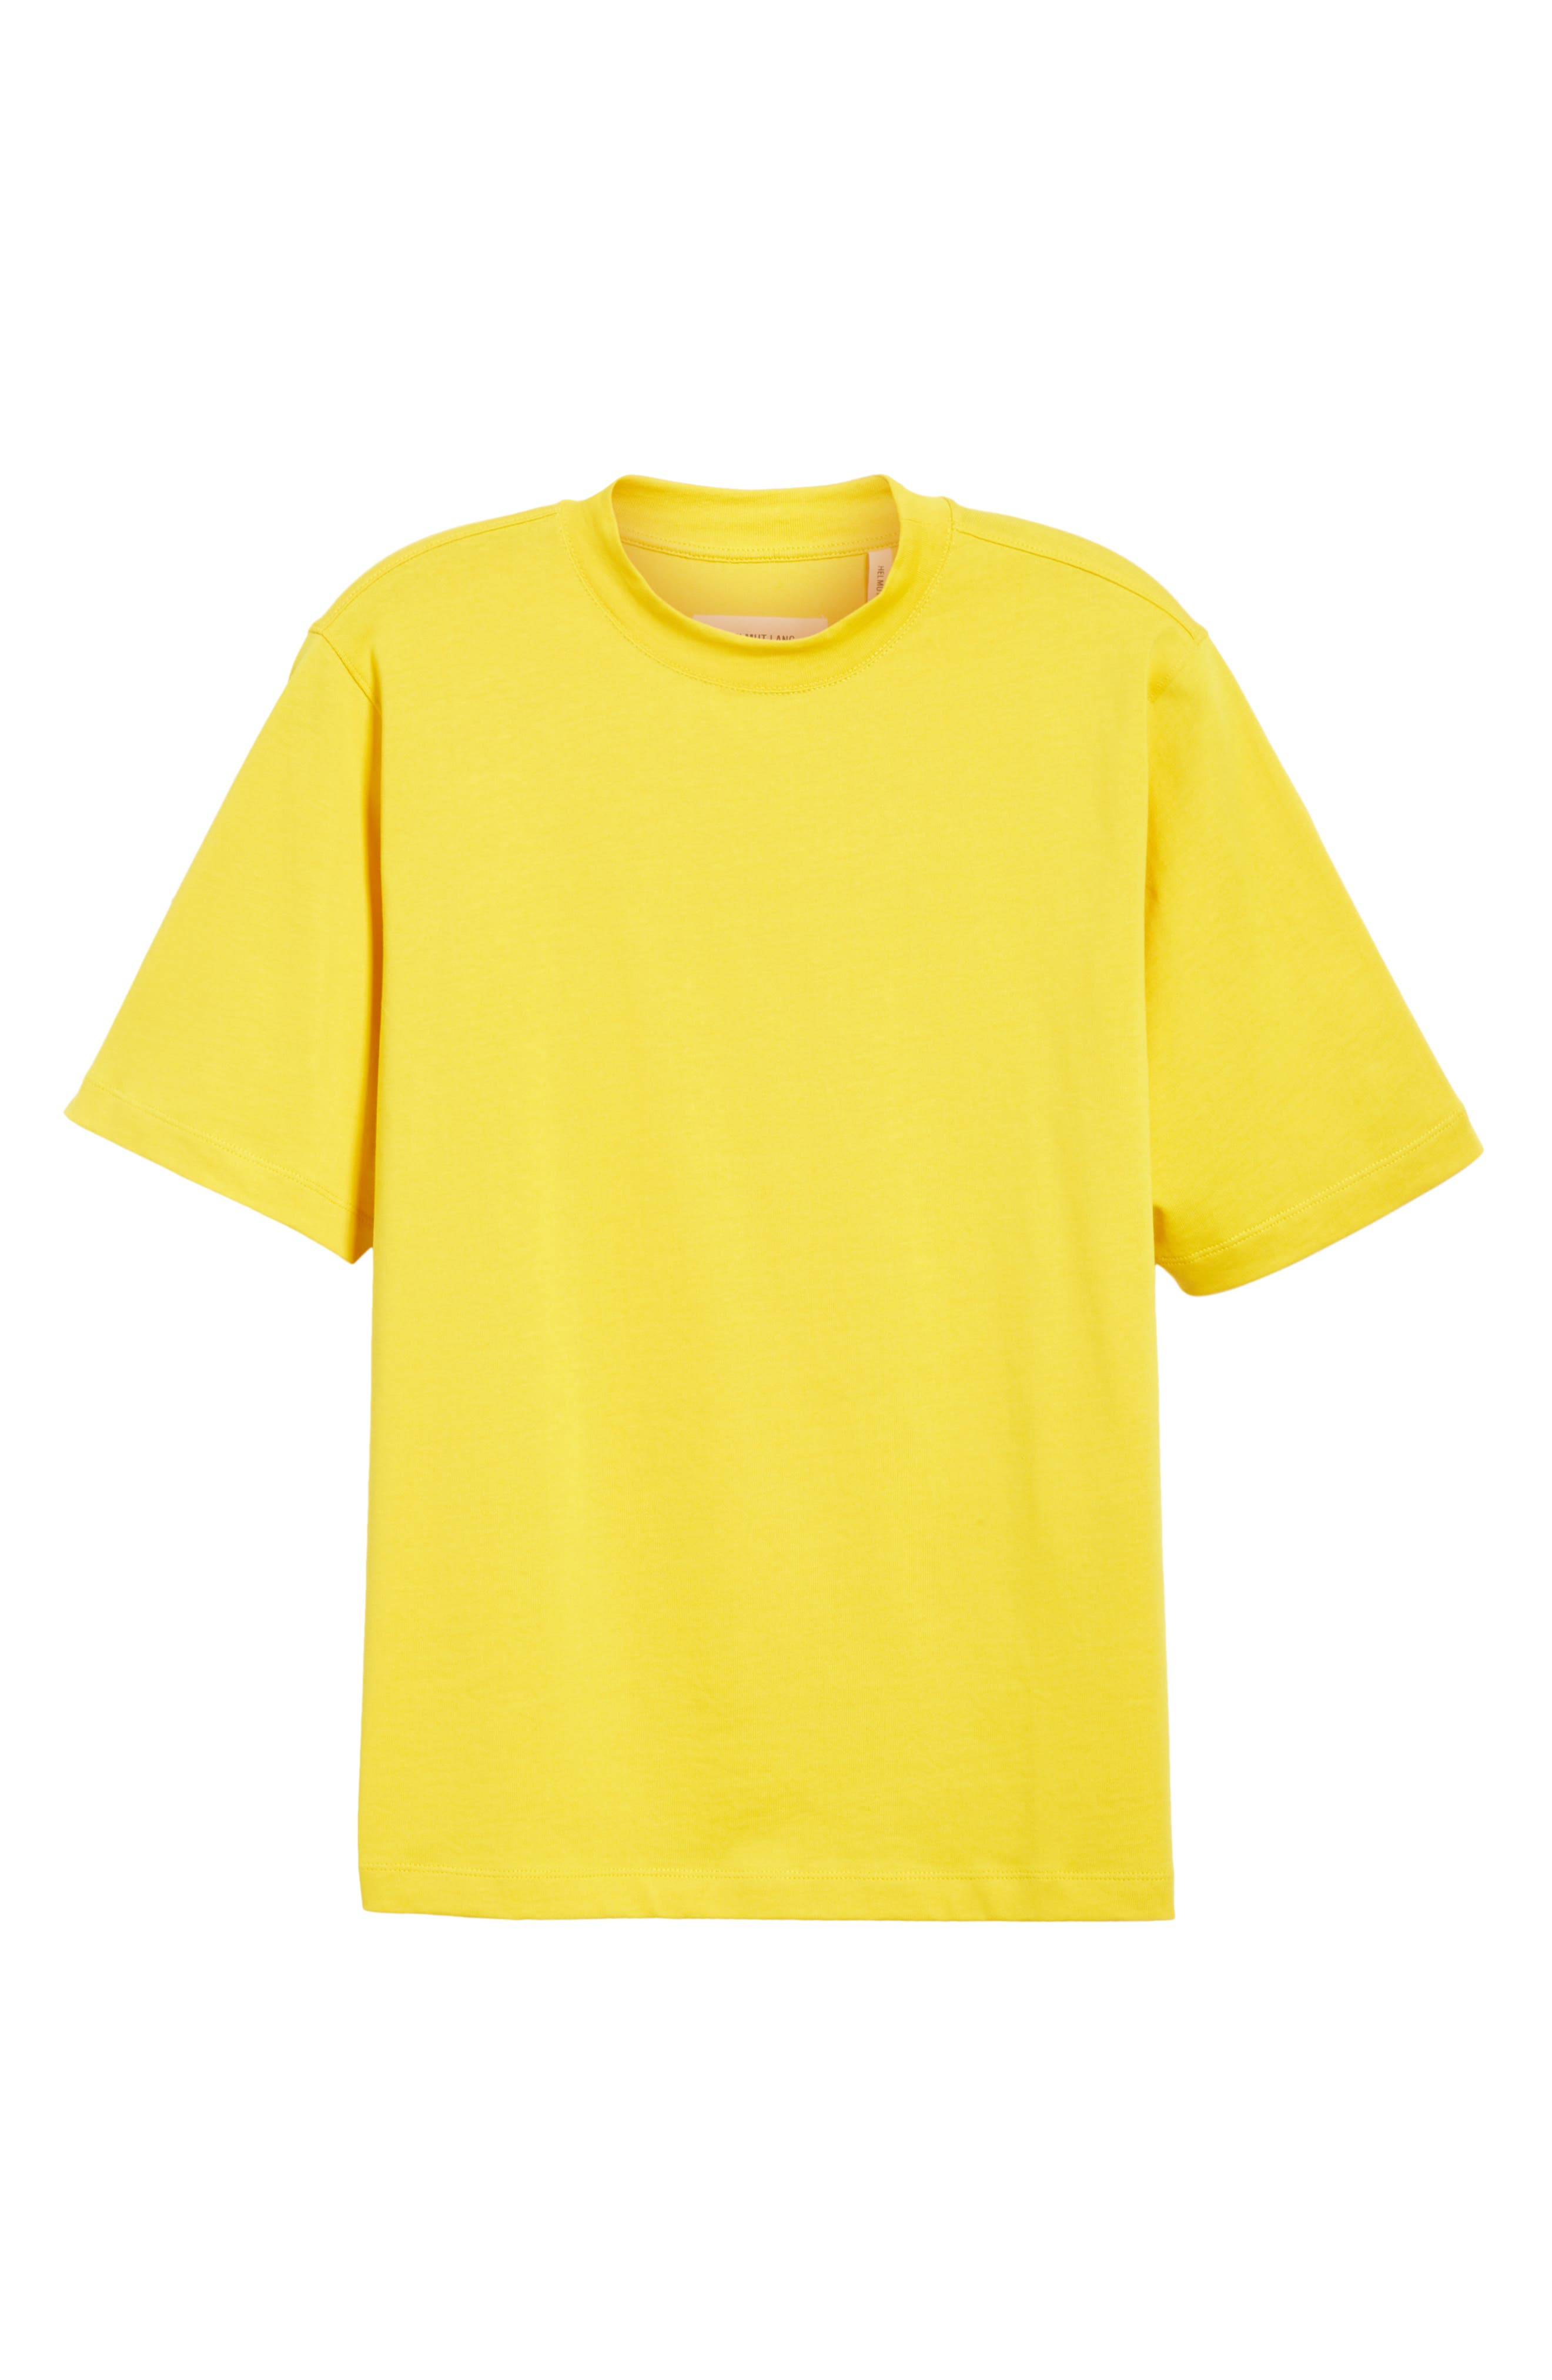 Tall T-Shirt,                             Alternate thumbnail 6, color,                             700